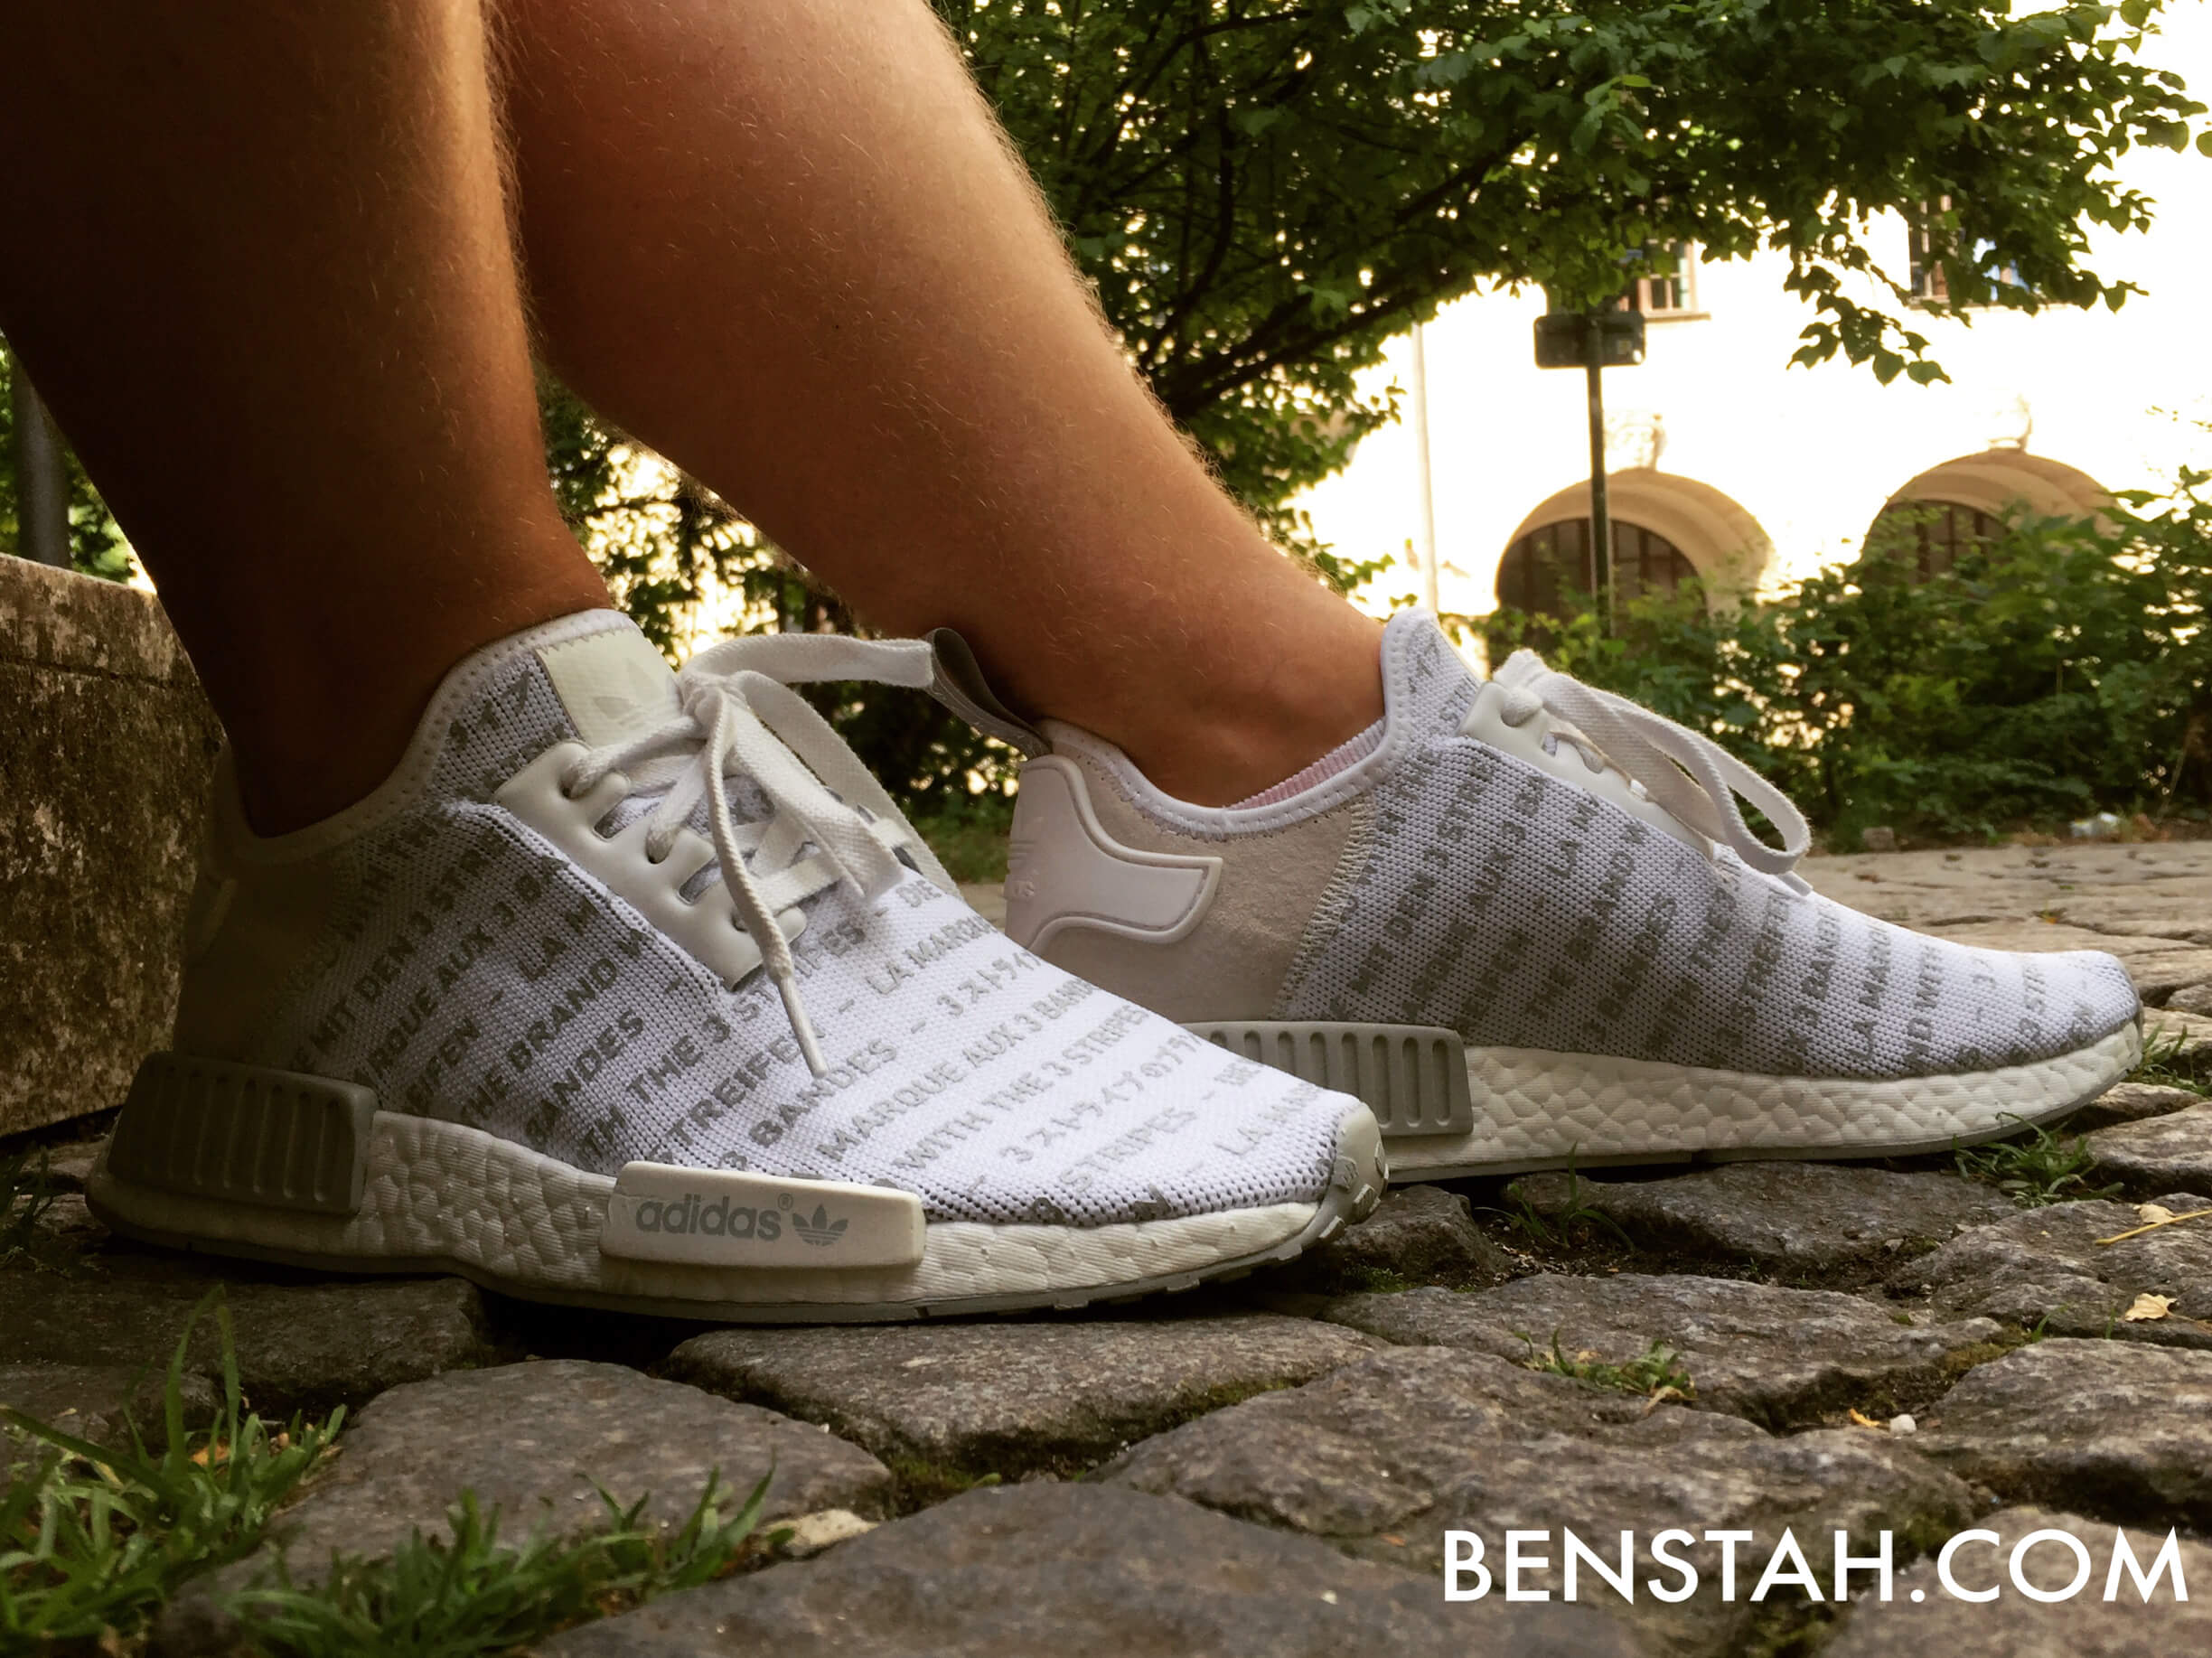 adidas-nmd-r1-whiteout-side-view-benstah-onfeet